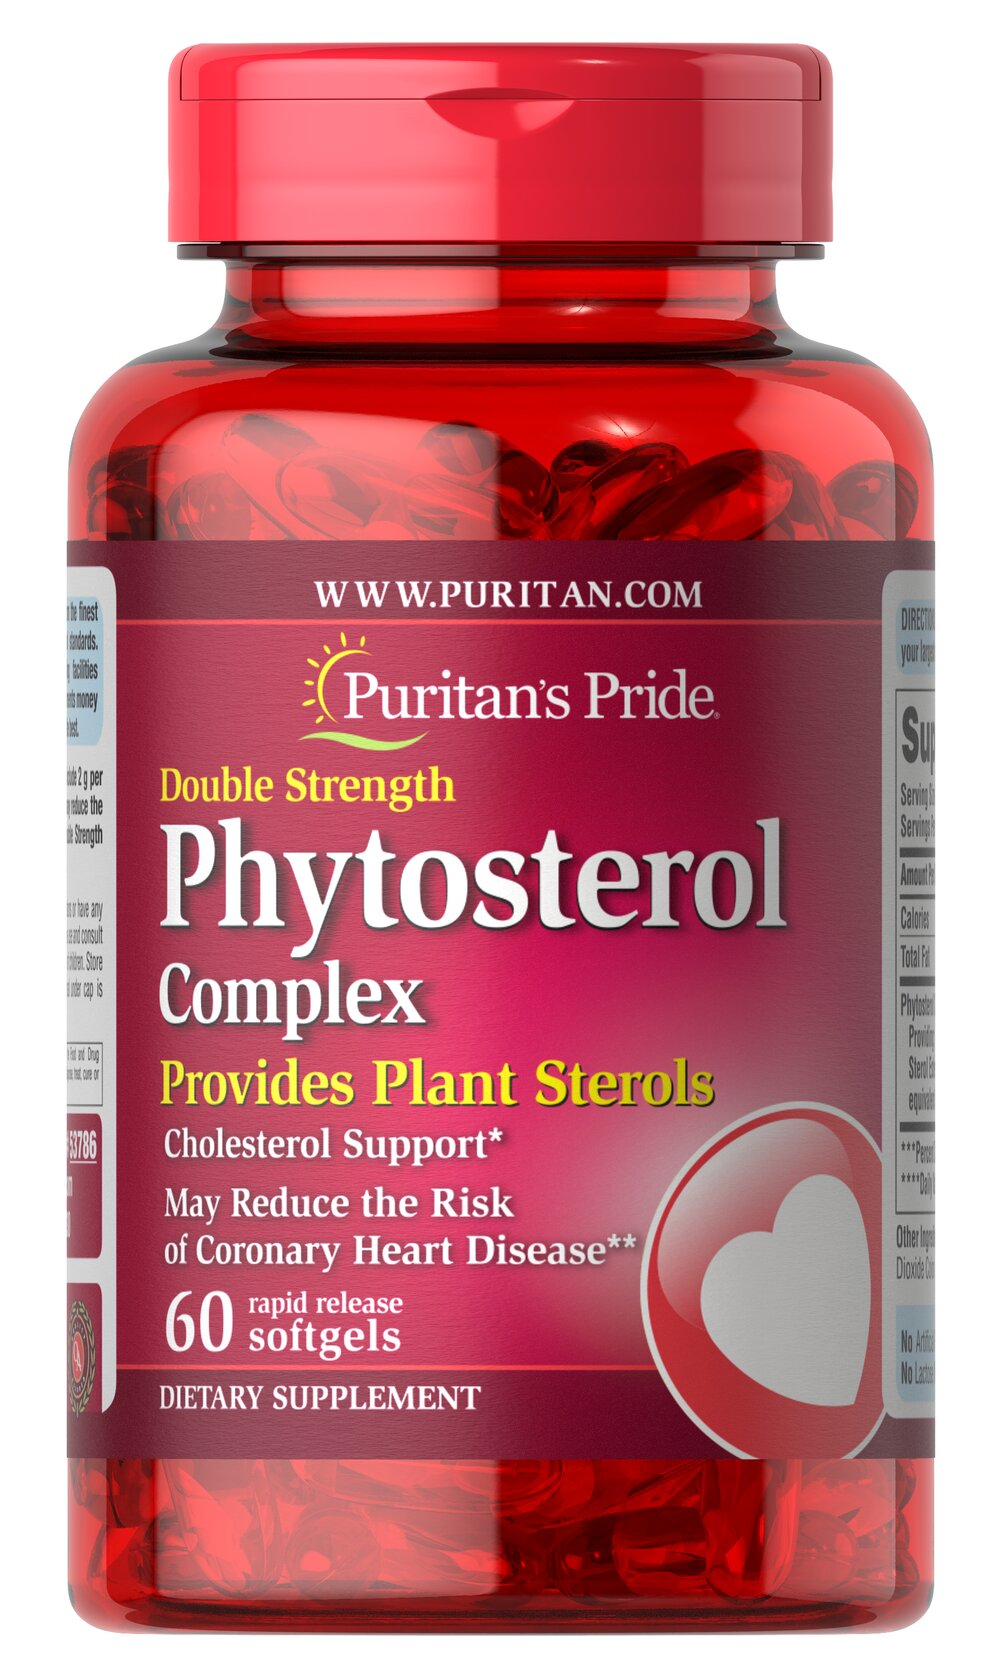 Double Strength Phytosterol Complex 2000mg (per serving) <ul><li>Provides Plant Sterols</li><li>Cholesterol Support**</li><li>May Reduce the Risk of Heart Disease*<br /></li></ul><p>Scientific evidence demonstrates that diets that include phytosterols may reduce the risk of coronary heart disease.  Our specialized formula exceeds strict quality standards for levels of phytosterols (beta sitosterol, stigmasterol, and campesterol